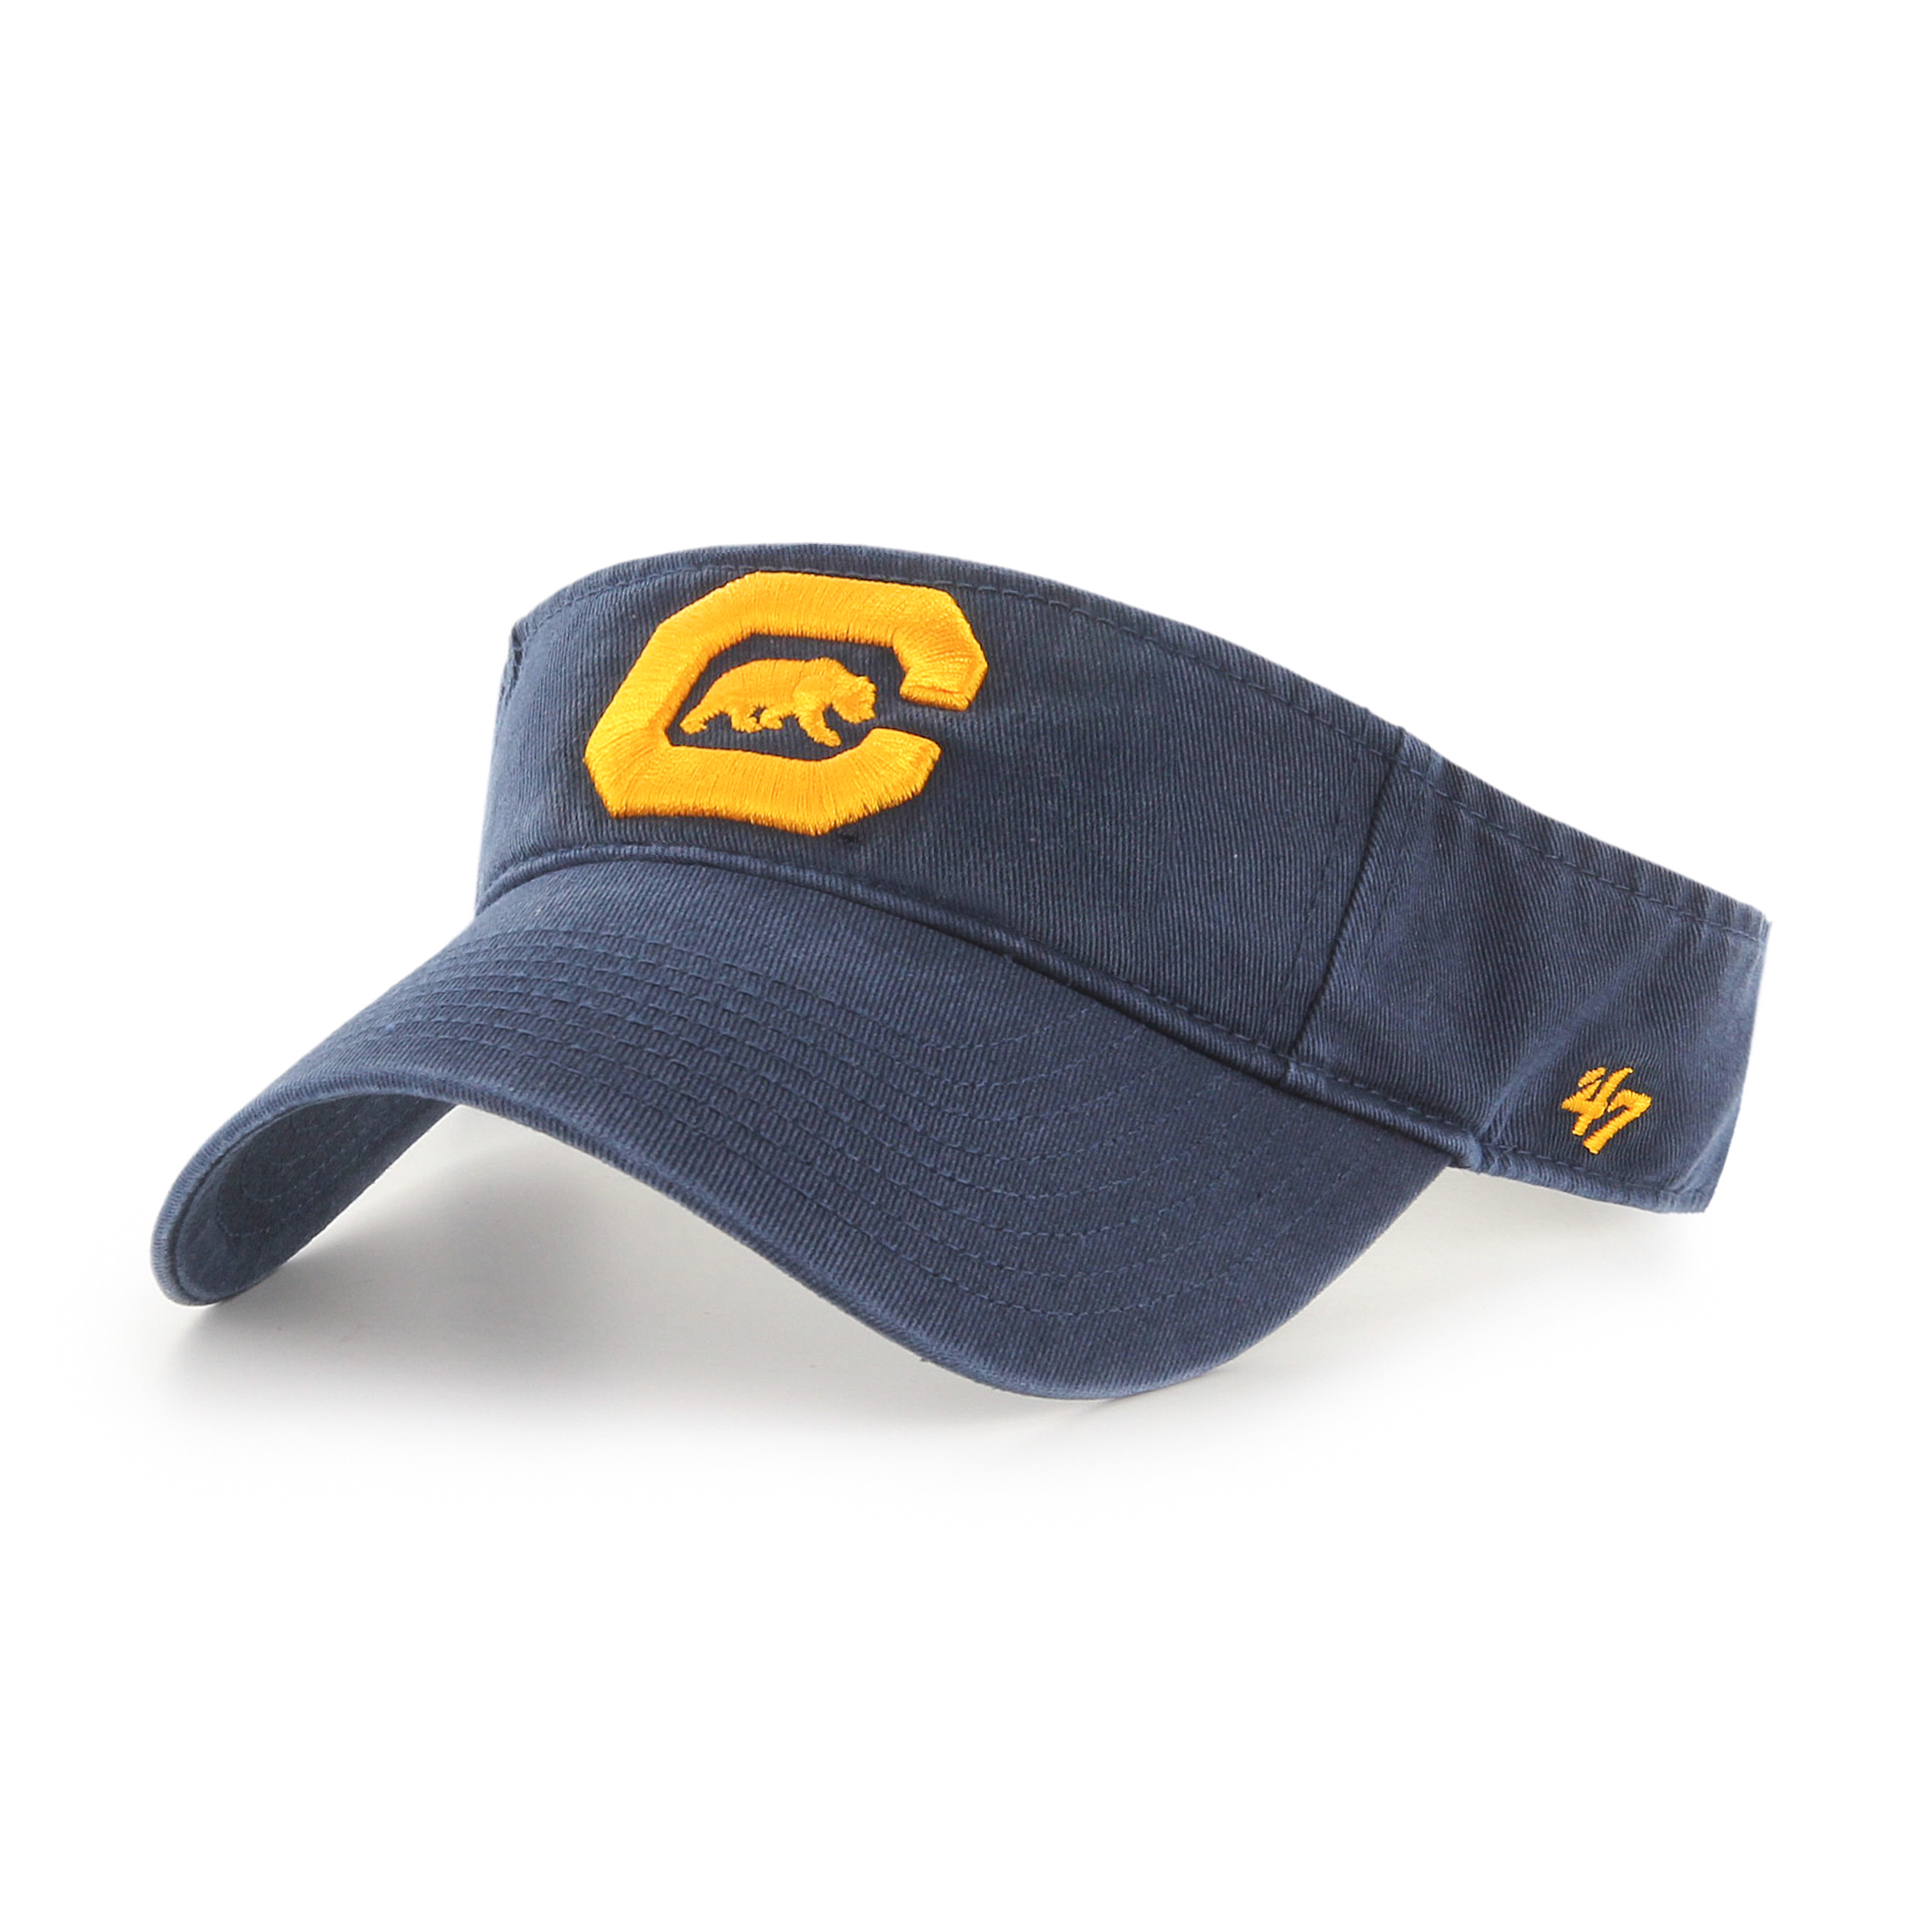 M '47 Clean Up Visor C Bear